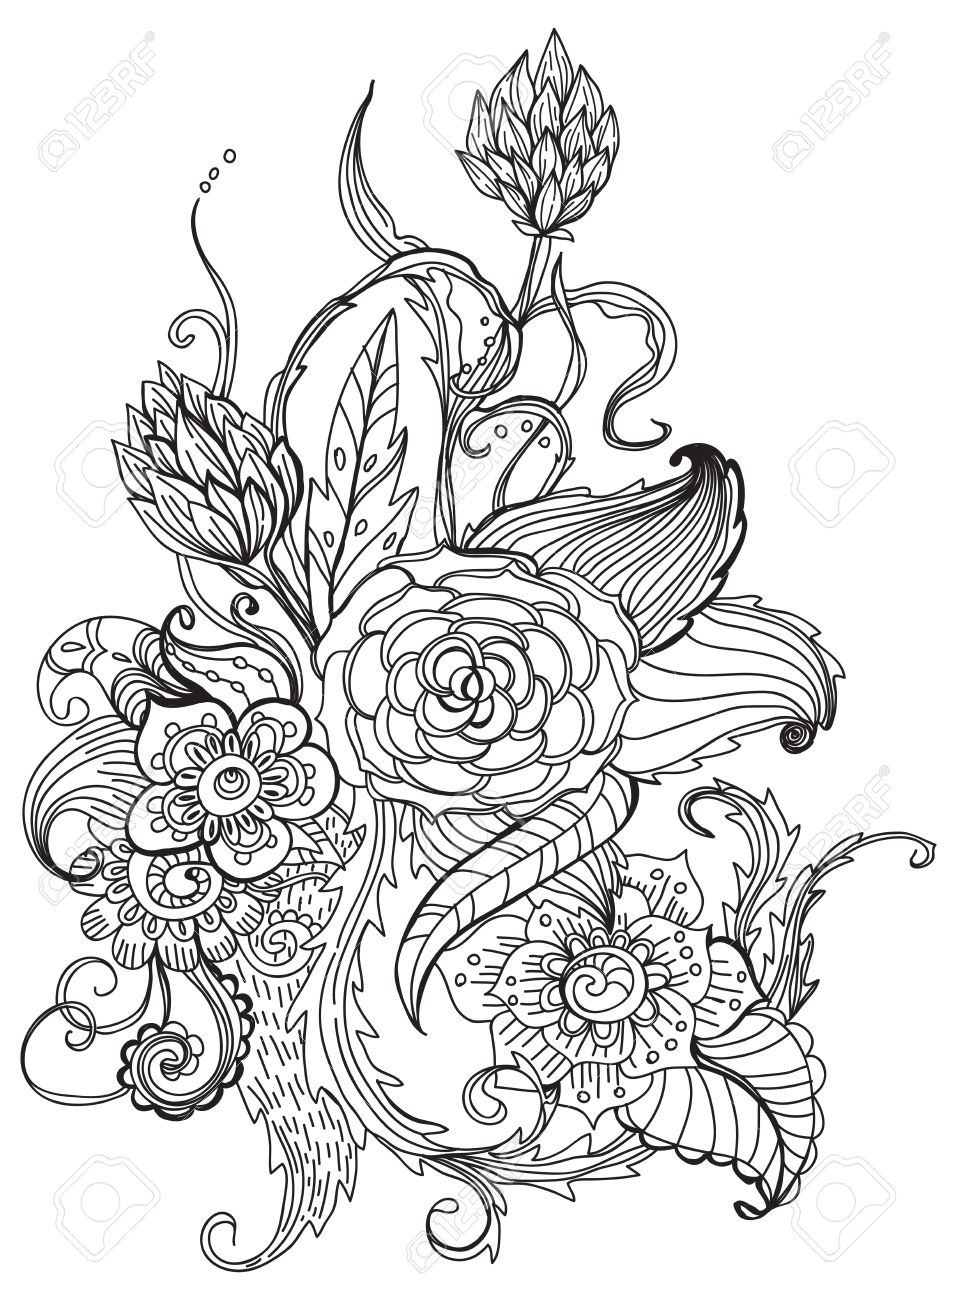 Romantic black and white hand drawn floral ornament for holiday design Stock Vector - 16407119